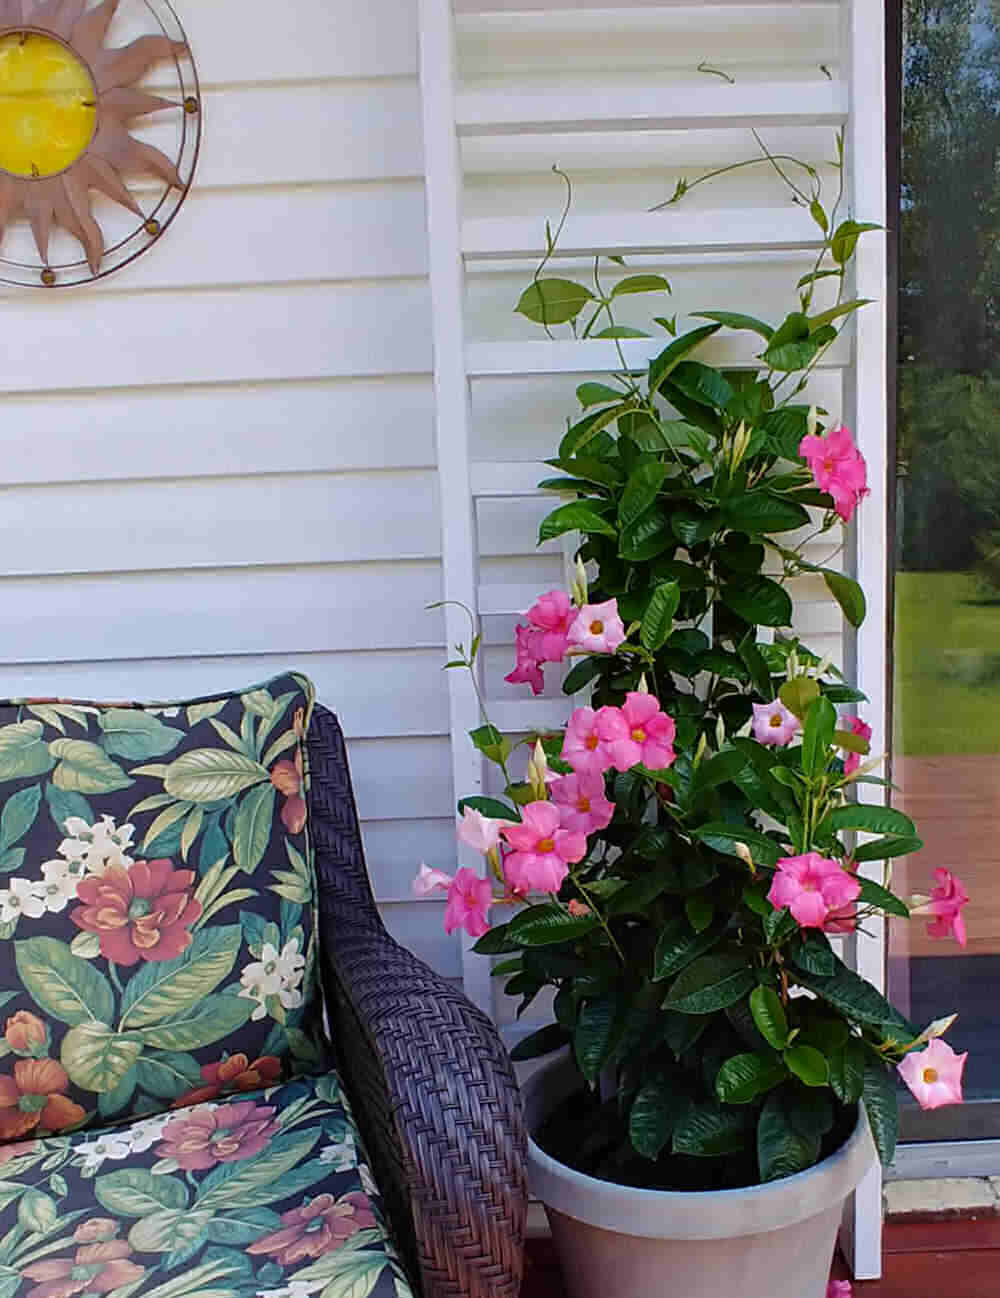 Flowering container plant with pink flowers and a large trellis and deck chair.